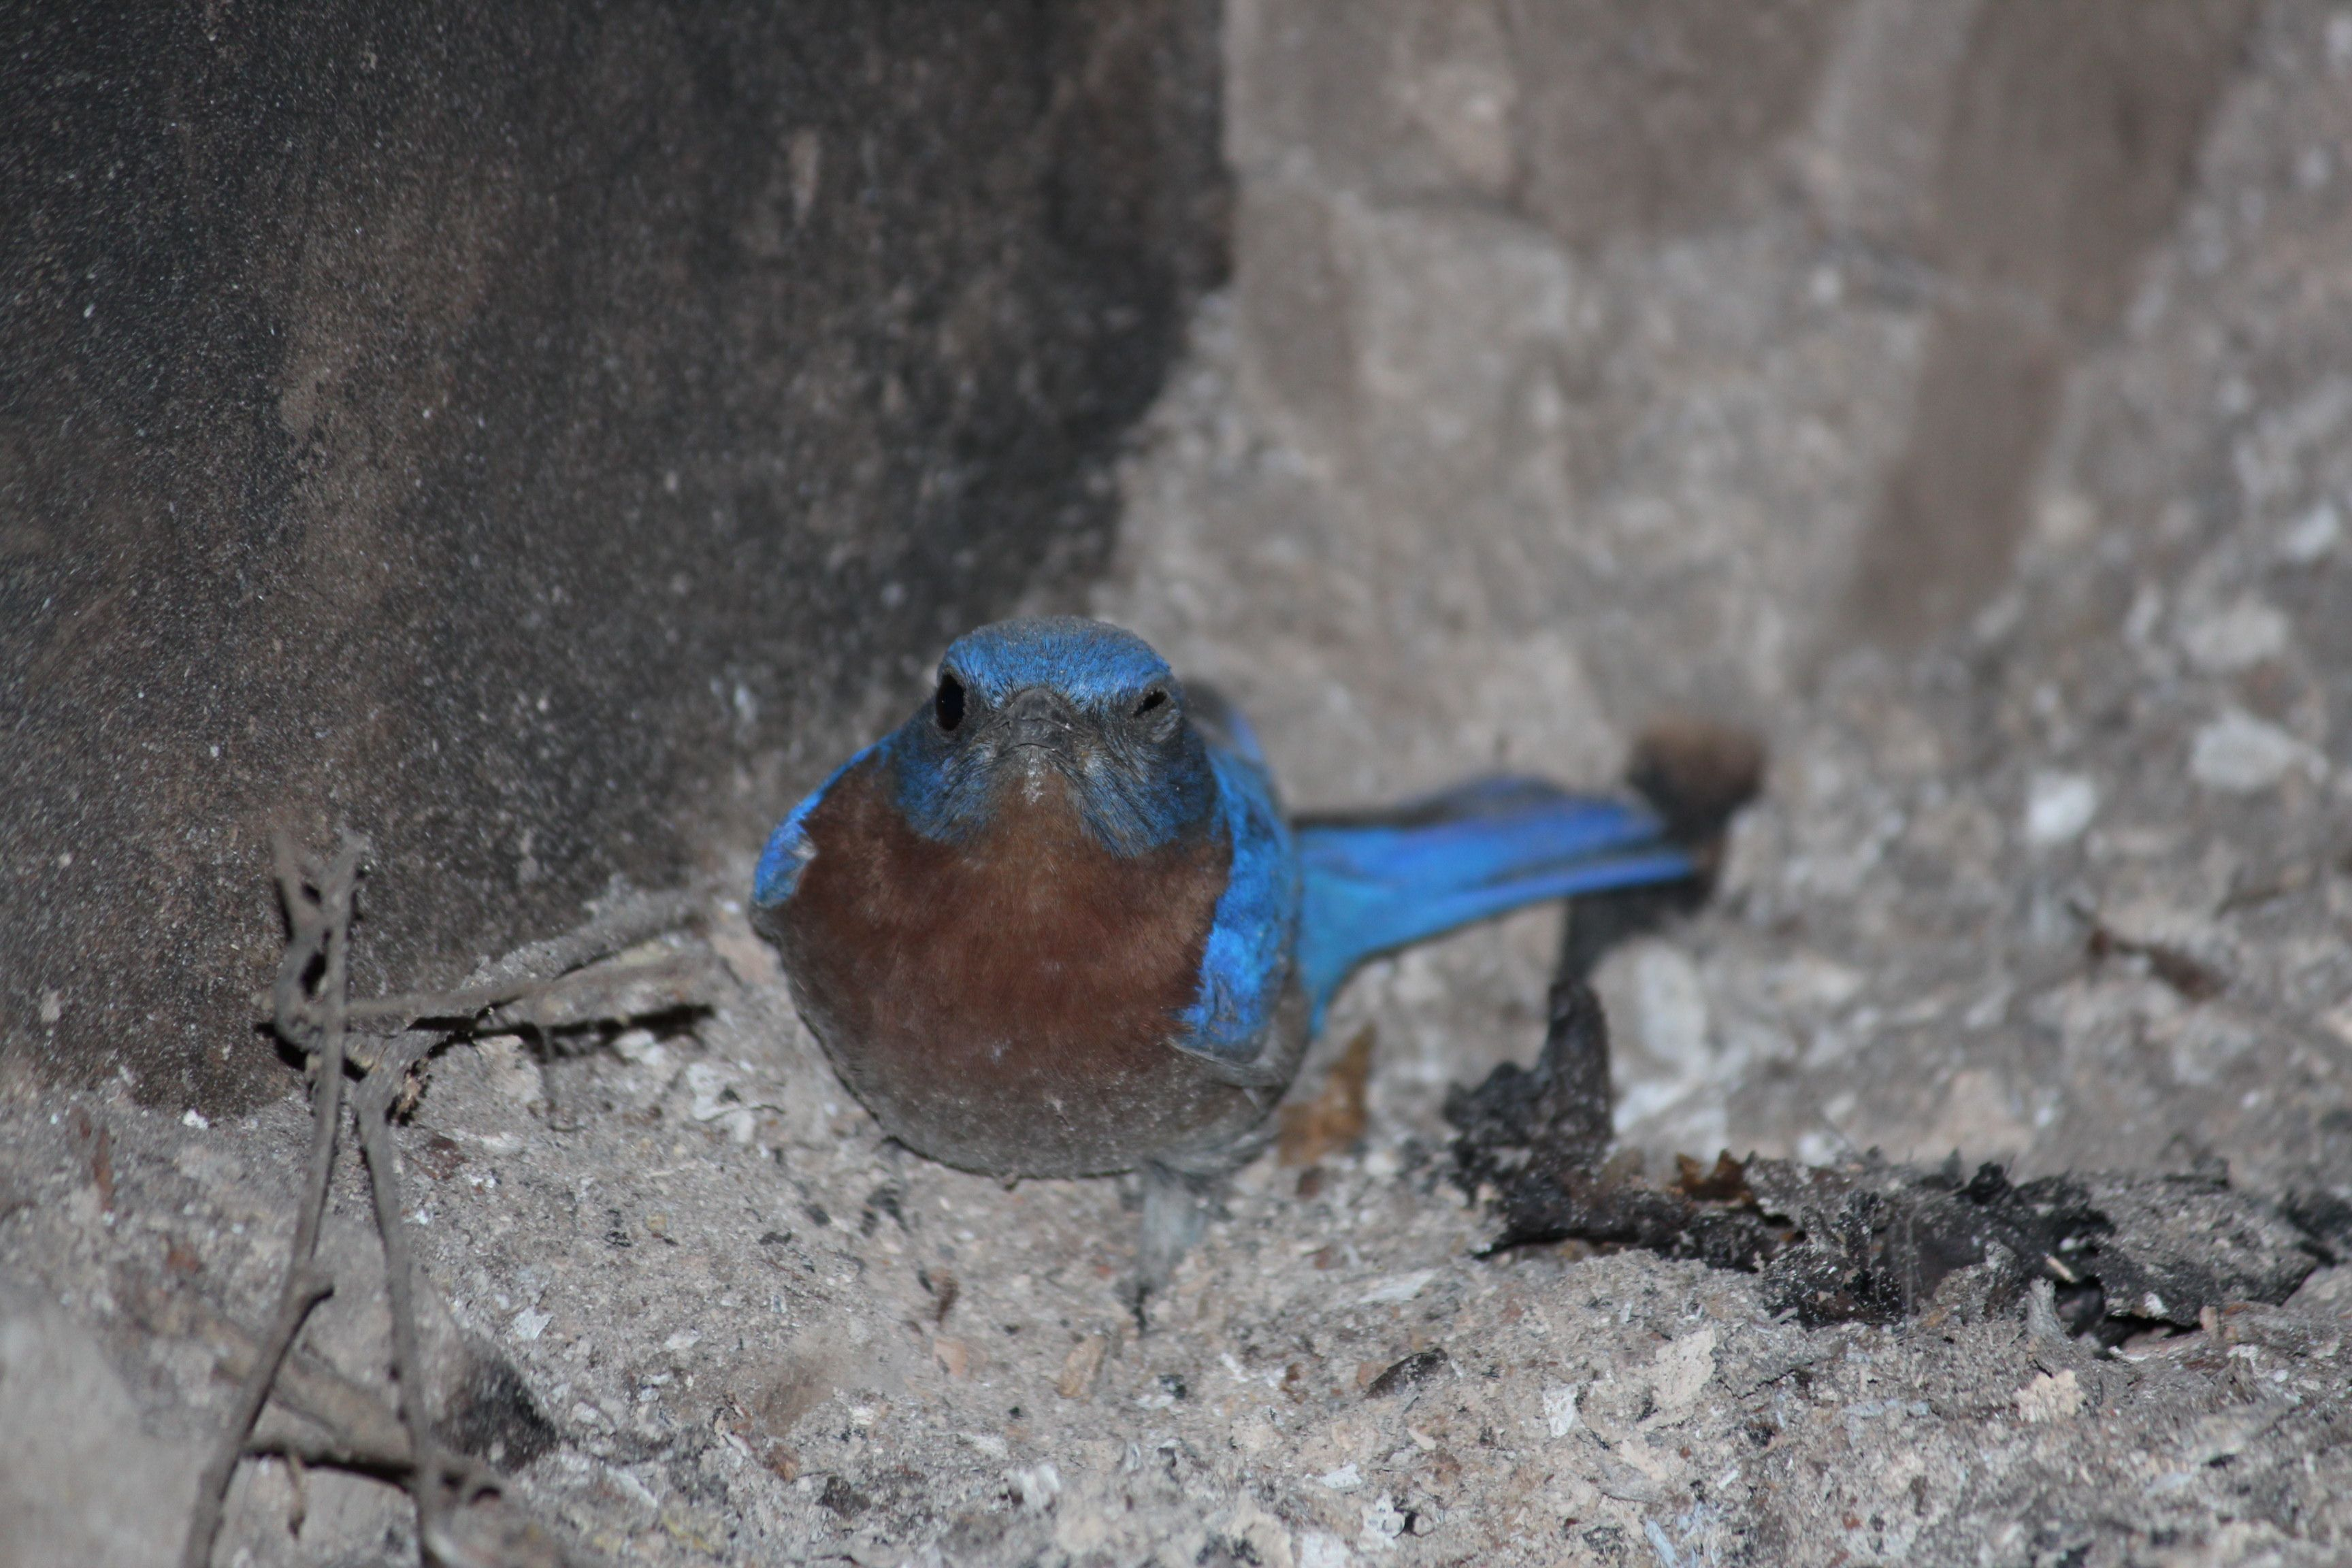 This sweet American Bluebird managed to find his way into my wood stove INSIDE MY HOUSE.  Luckily we were able to rescue him and set him free to go help tend to the babies in the bluebird box.